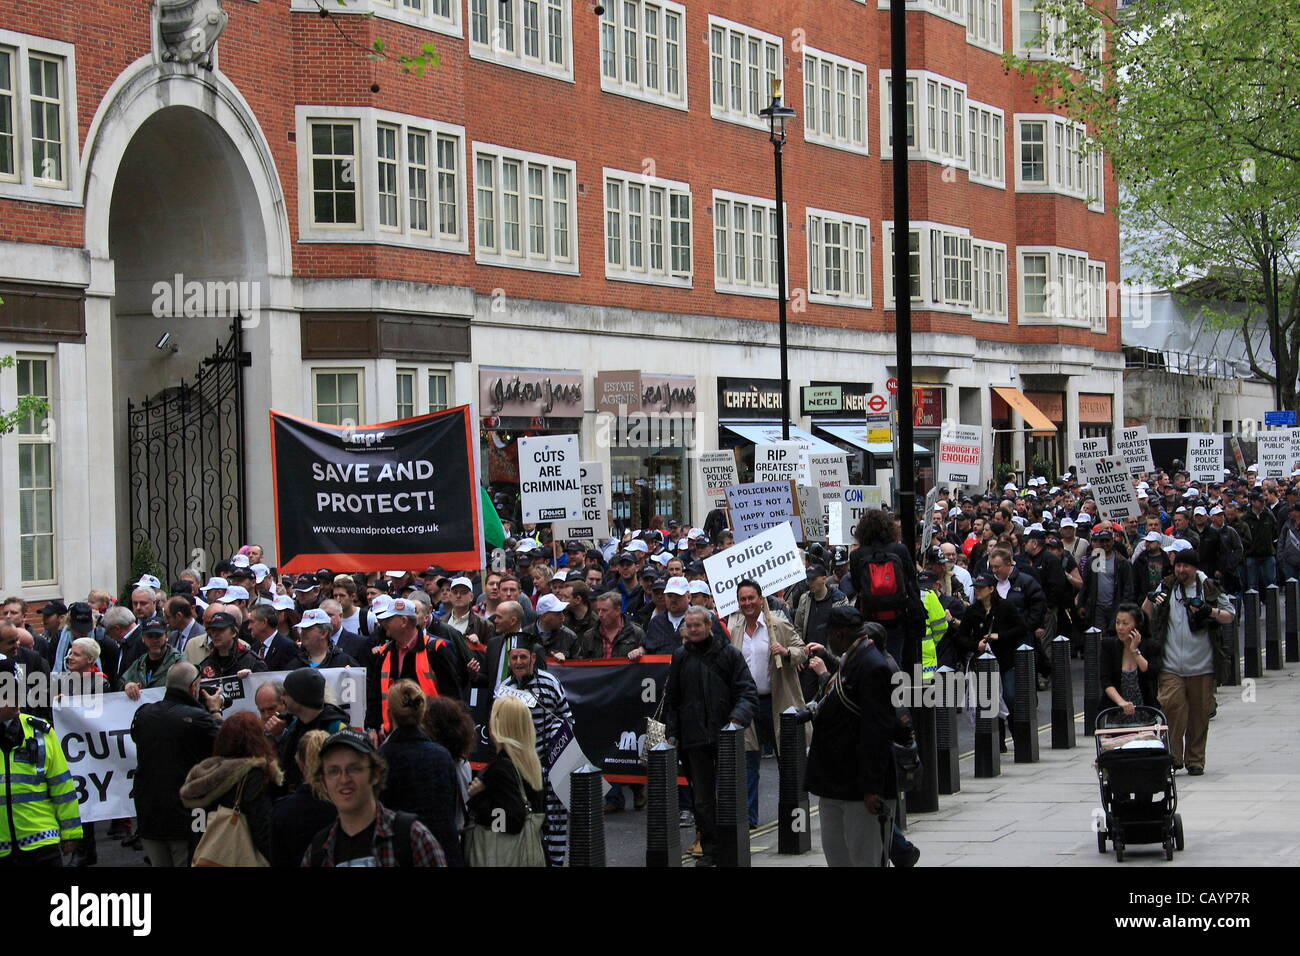 Thursday 10th May 2012 Police officers facing cuts in numbers and significant changes in pay and pensions rights - Stock Image